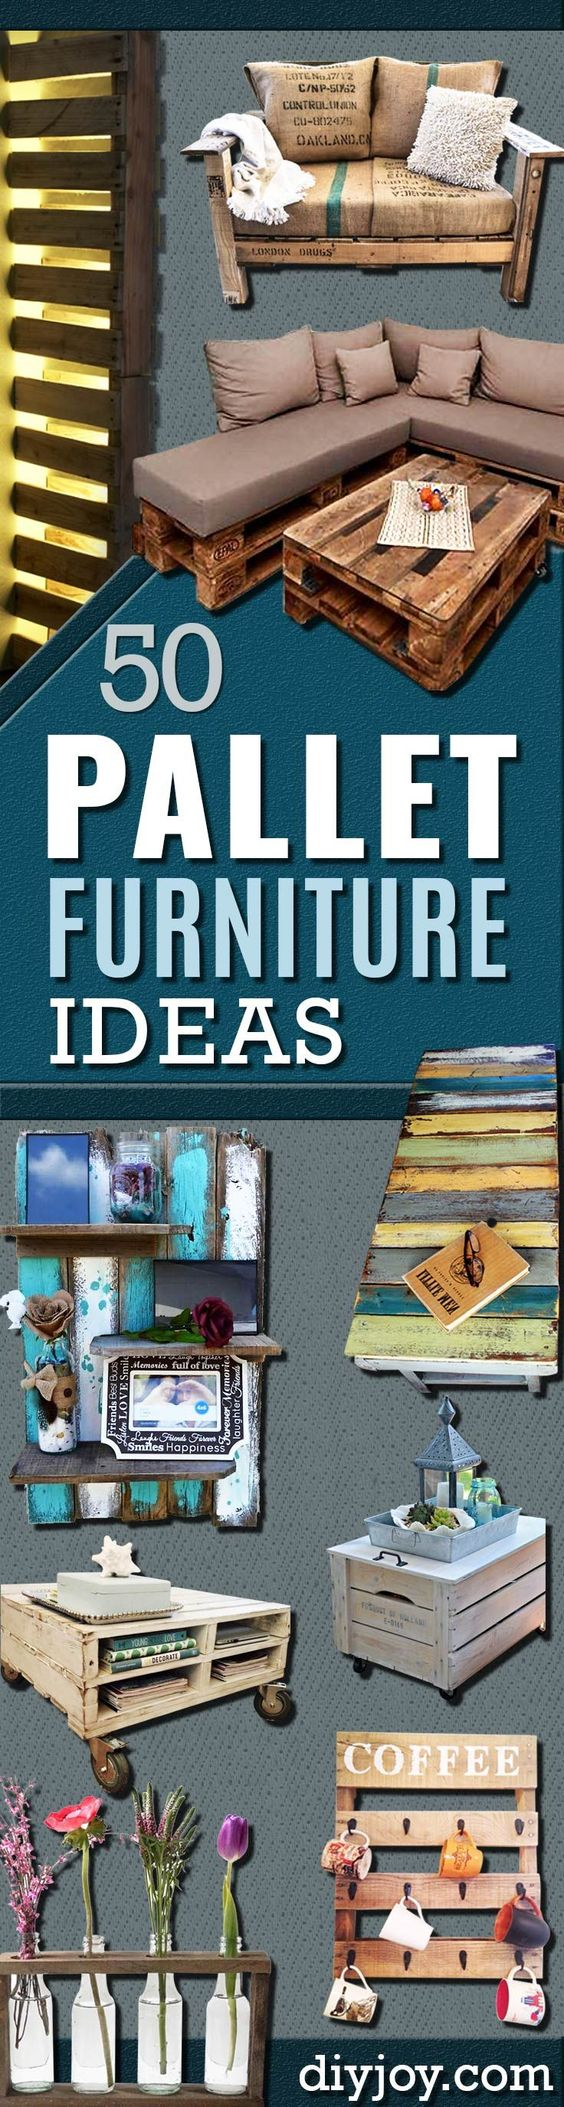 50 diy pallet furniture ideas furniture ideas furniture for Do it yourself living room ideas